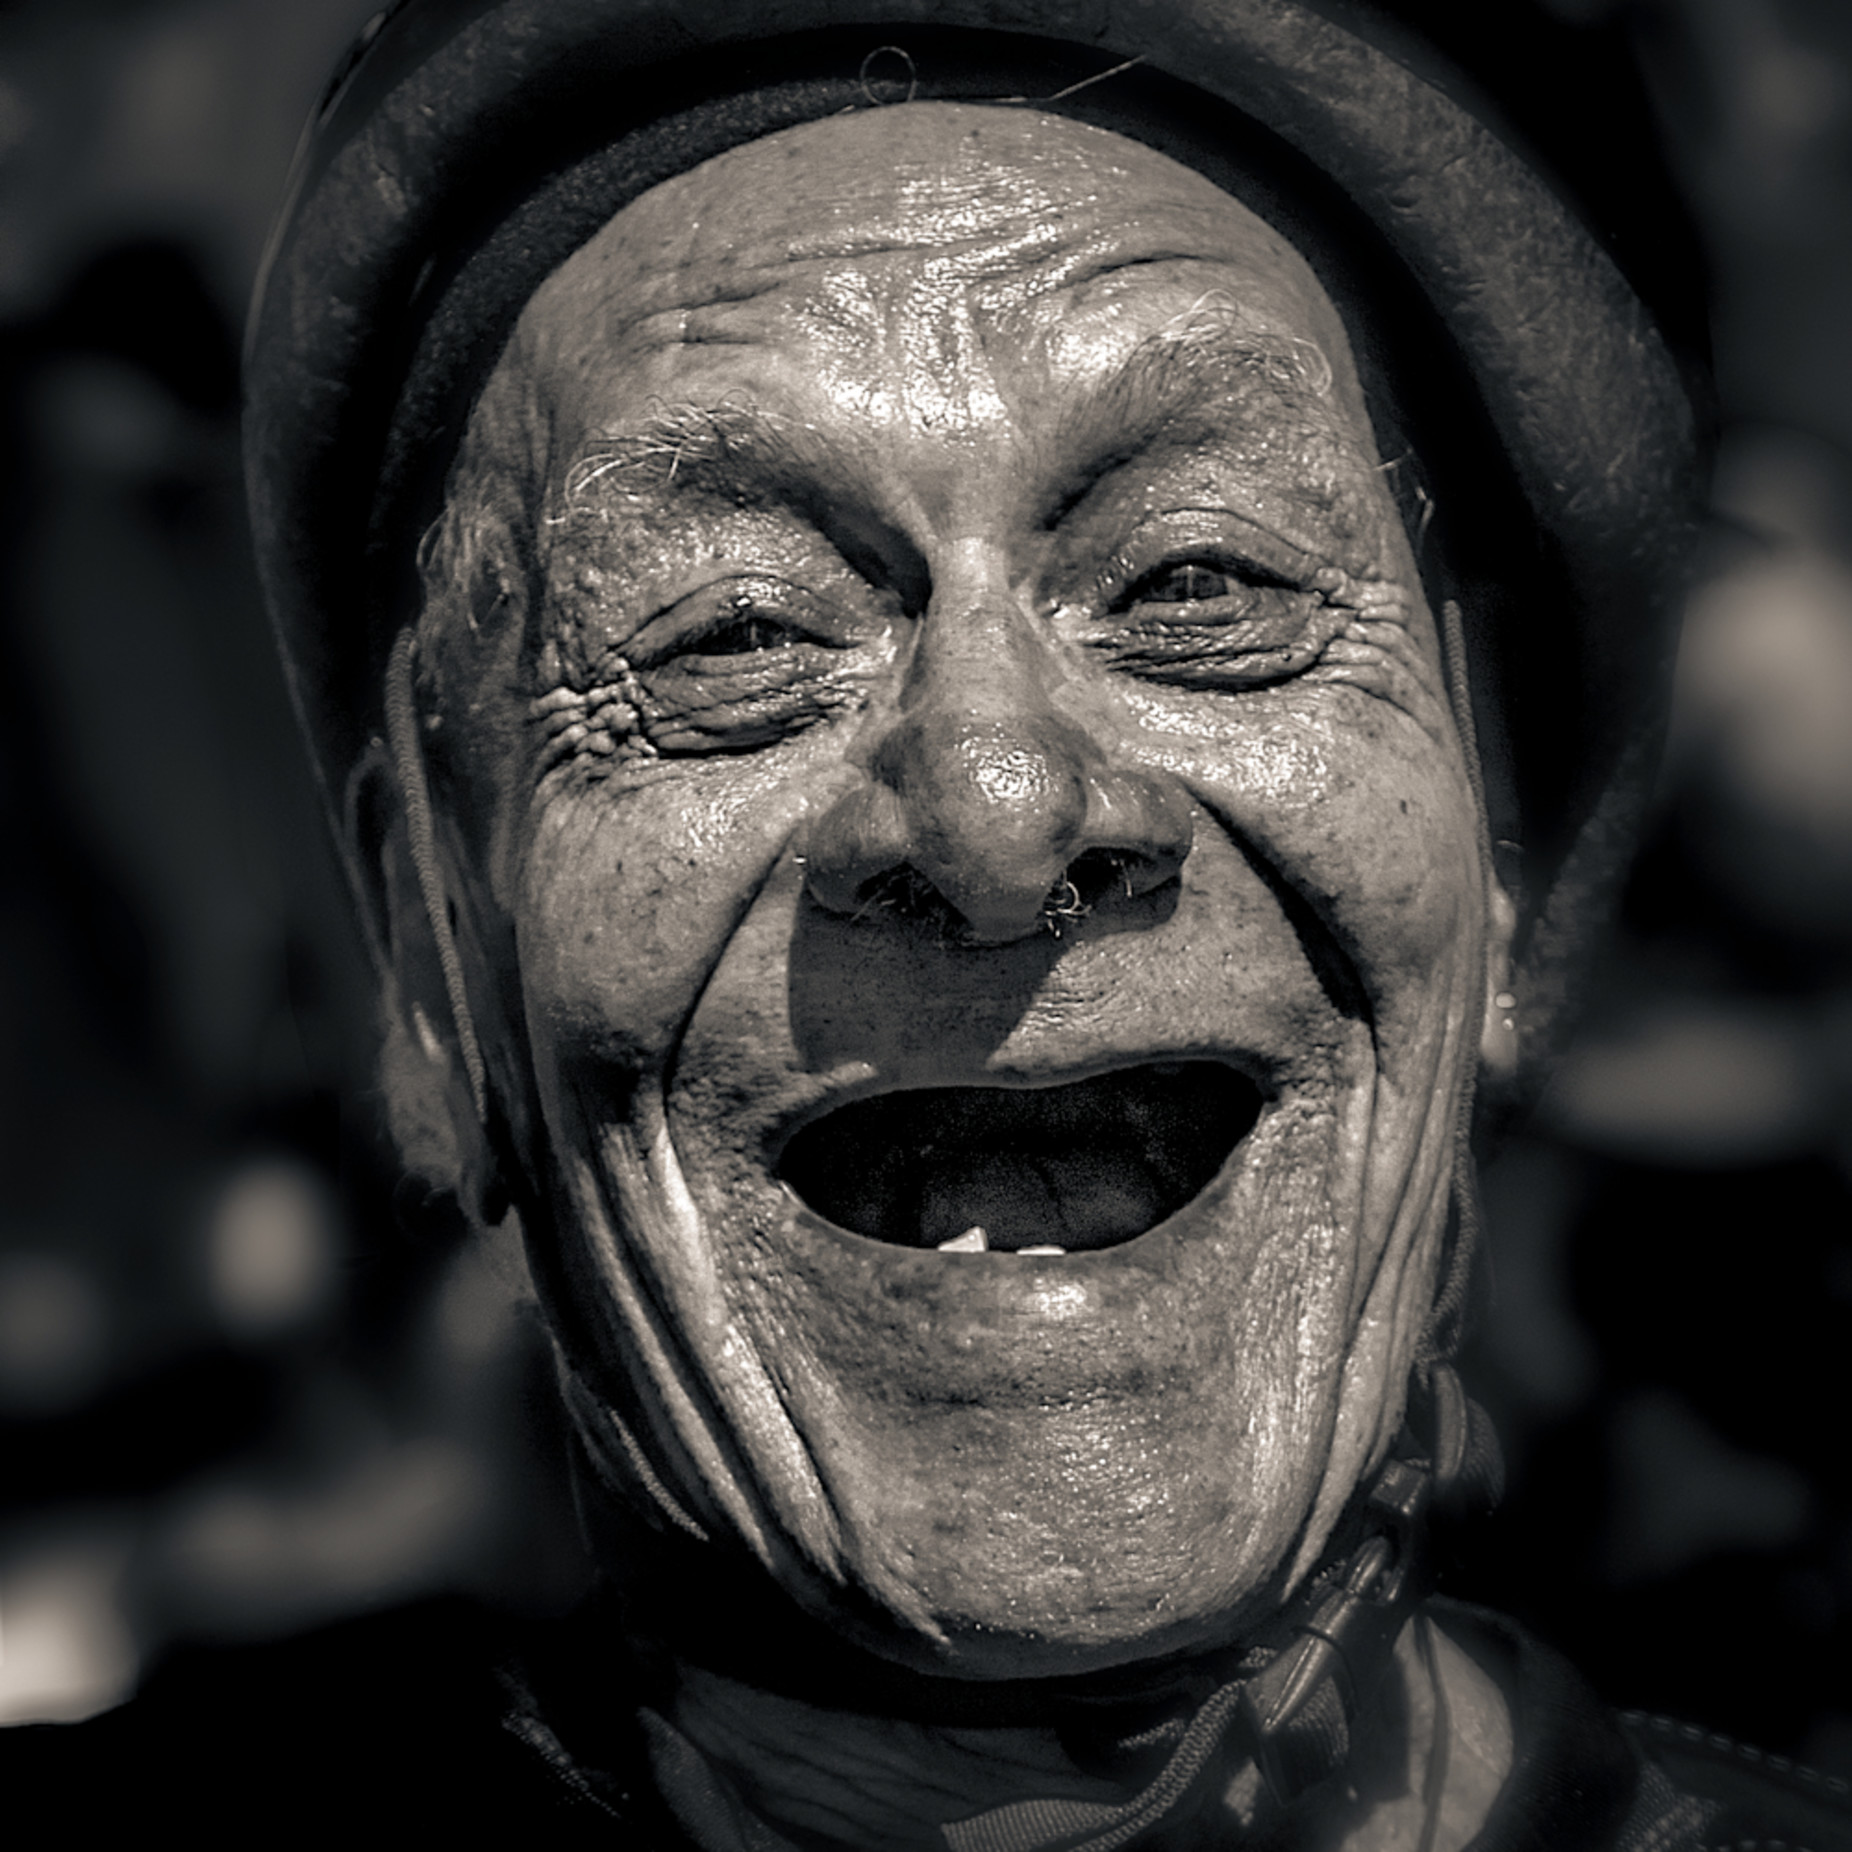 Laughing man at ciclavia 2018 okp8f0